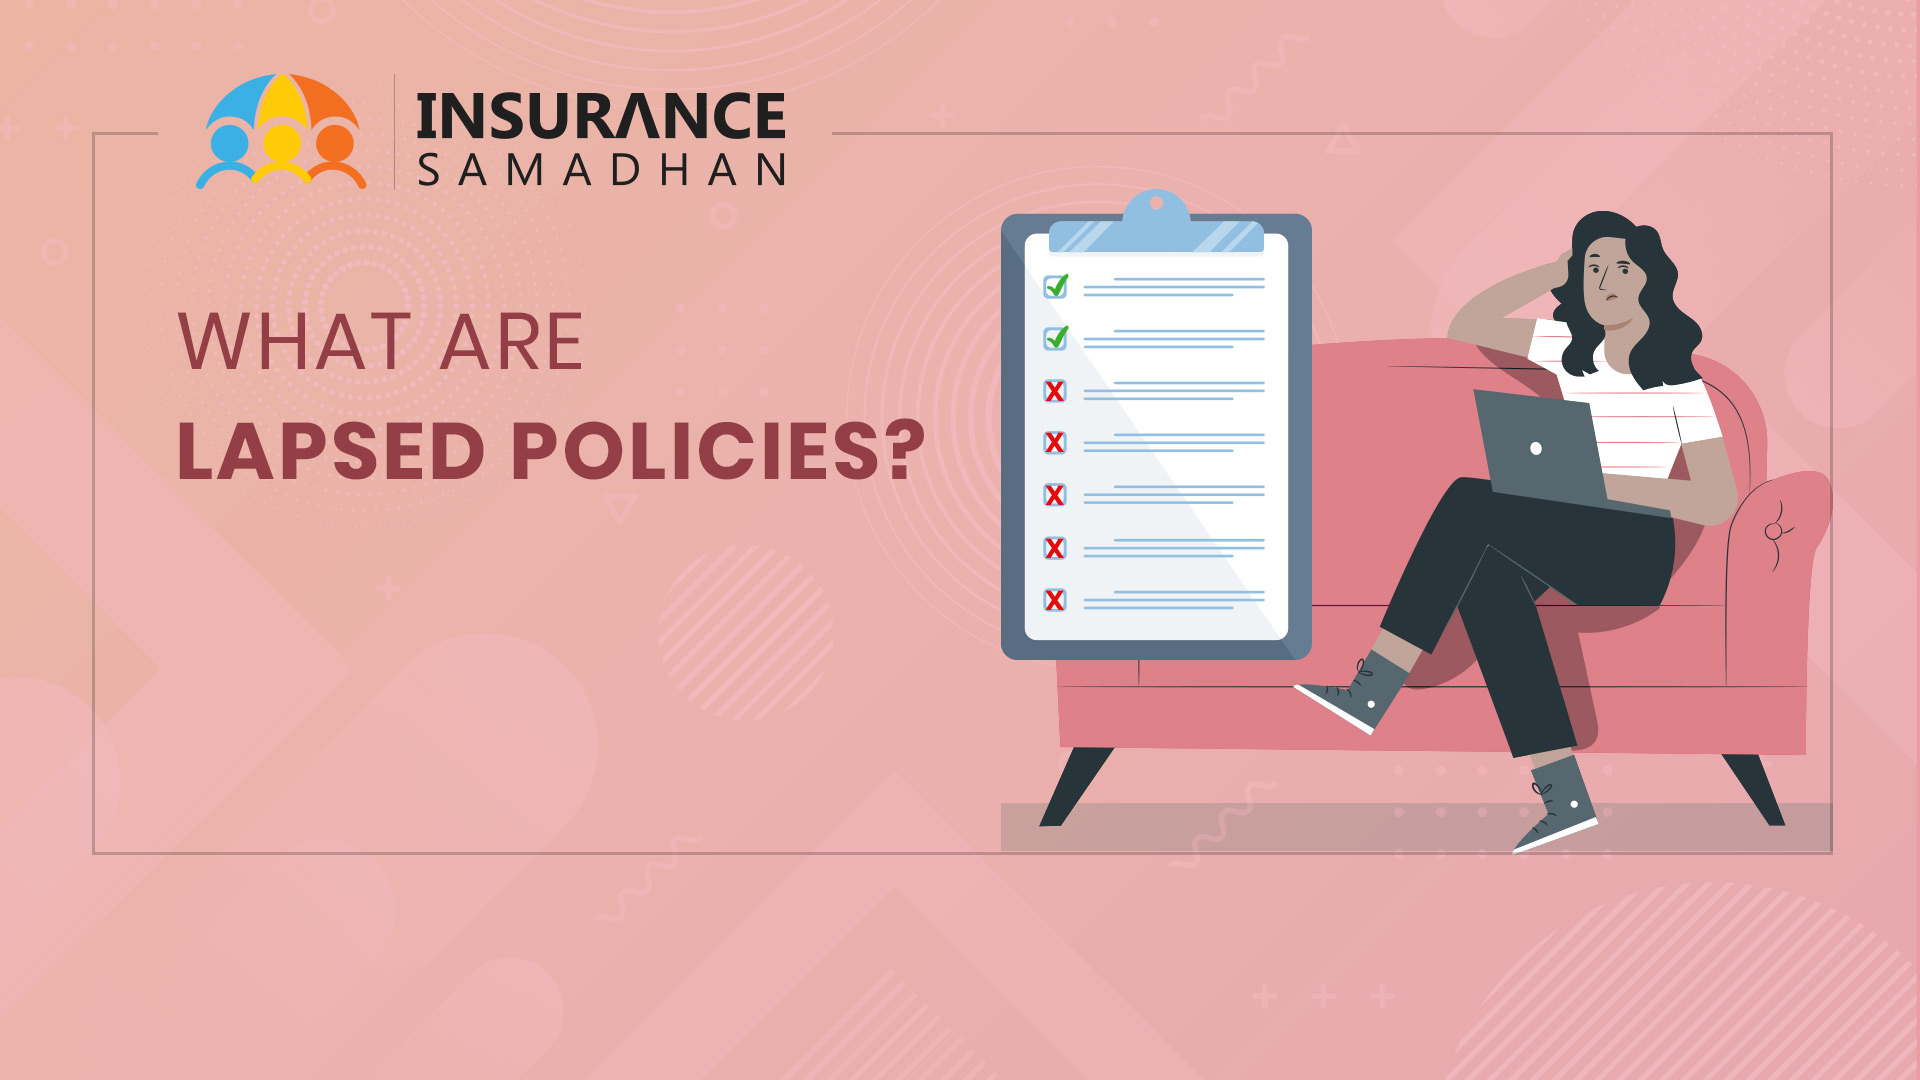 What are Lapsed Policies and how do they get lapsed?